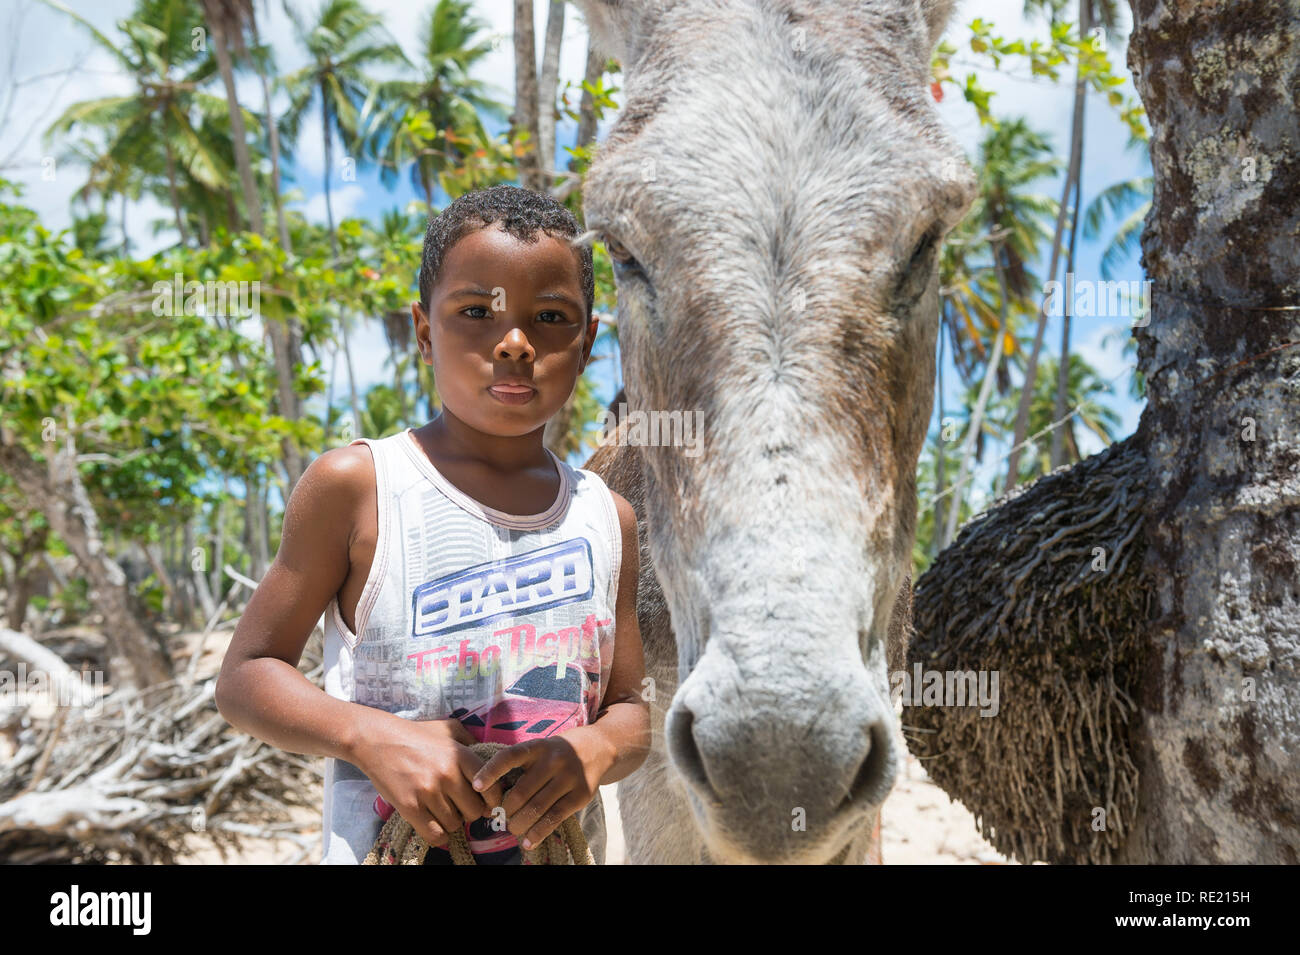 BAHIA, BRAZIL - MARCH 11, 2017: A mule stands with a young Brazilian on the palm-fringed shore of a Northeastern Brazilian beach. Stock Photo